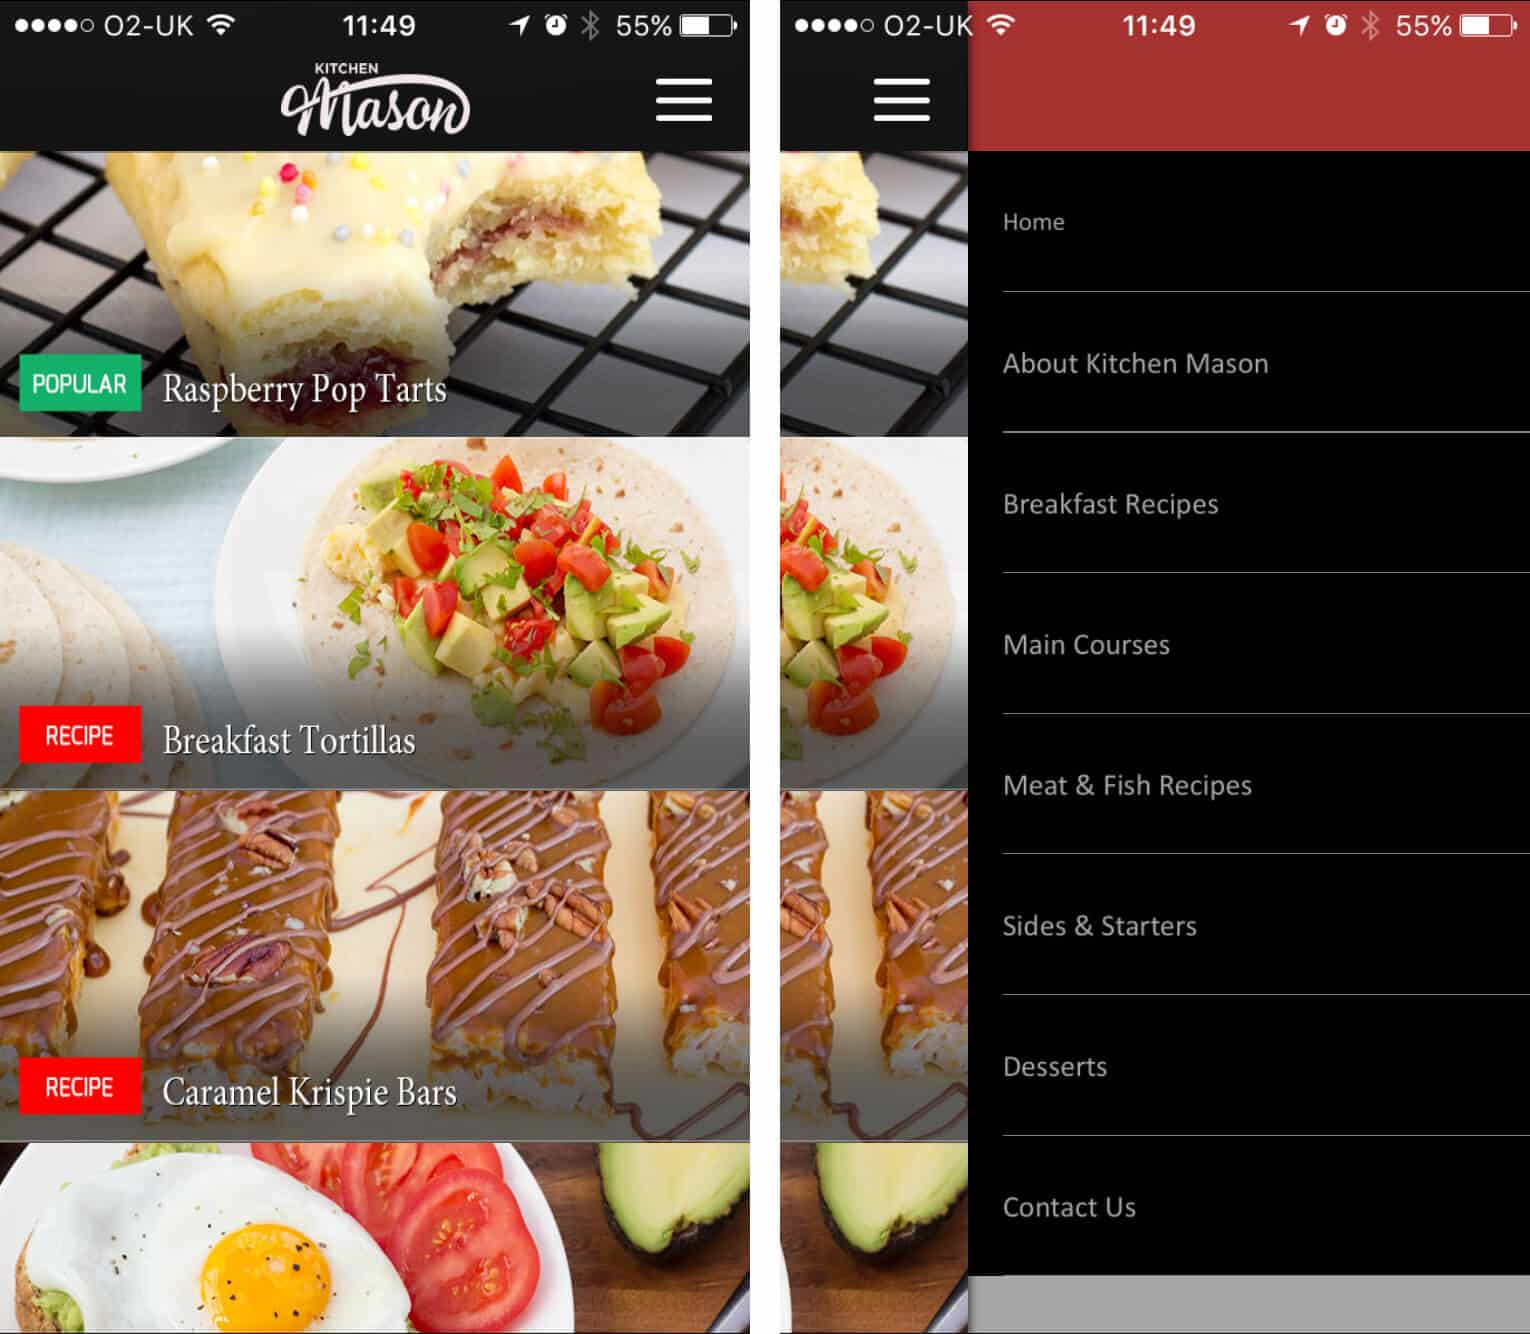 KitchenMason App Screenshot